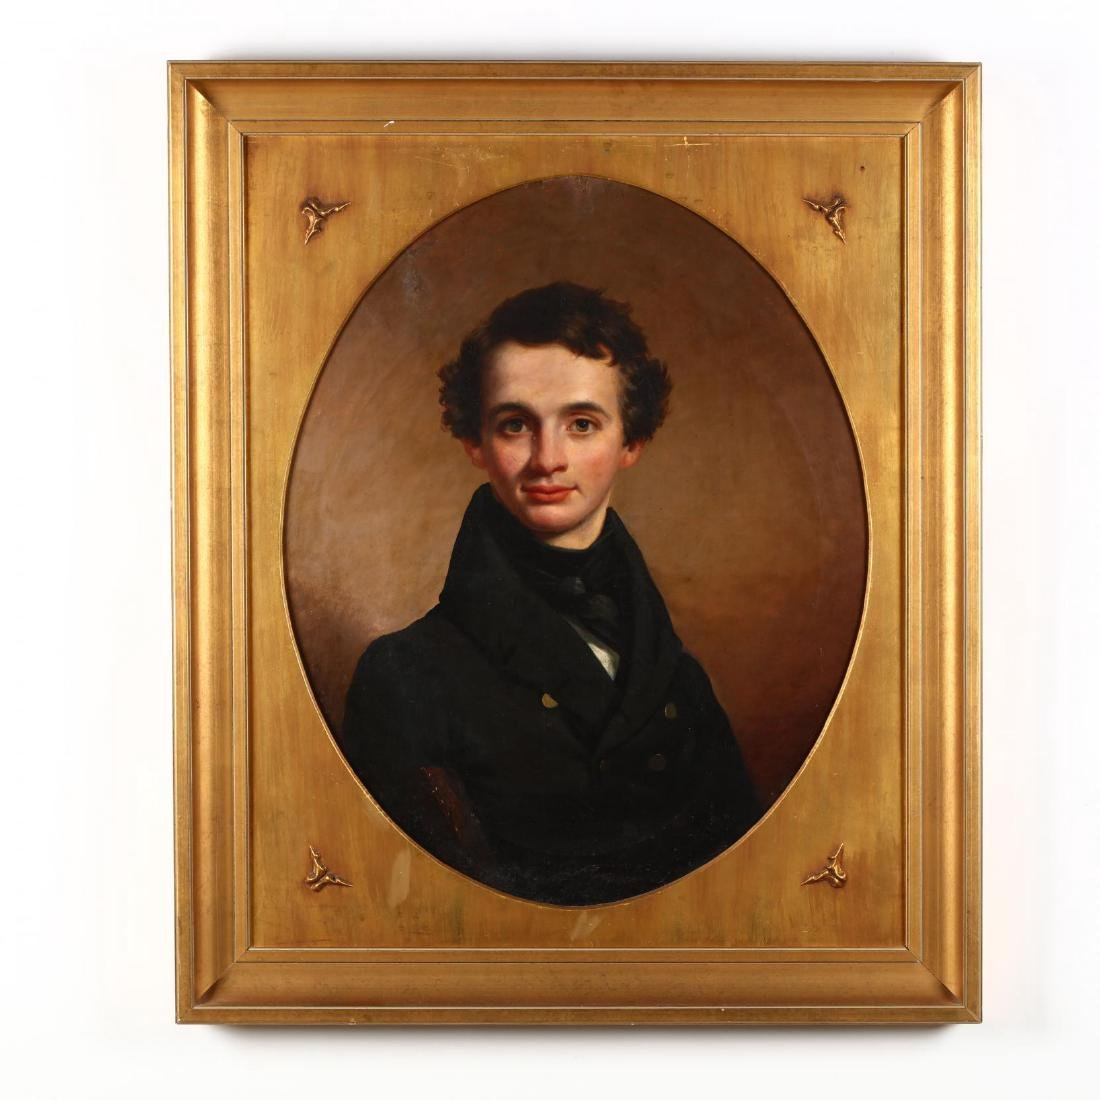 An Antique Portrait of a Young New York Timber Merchant